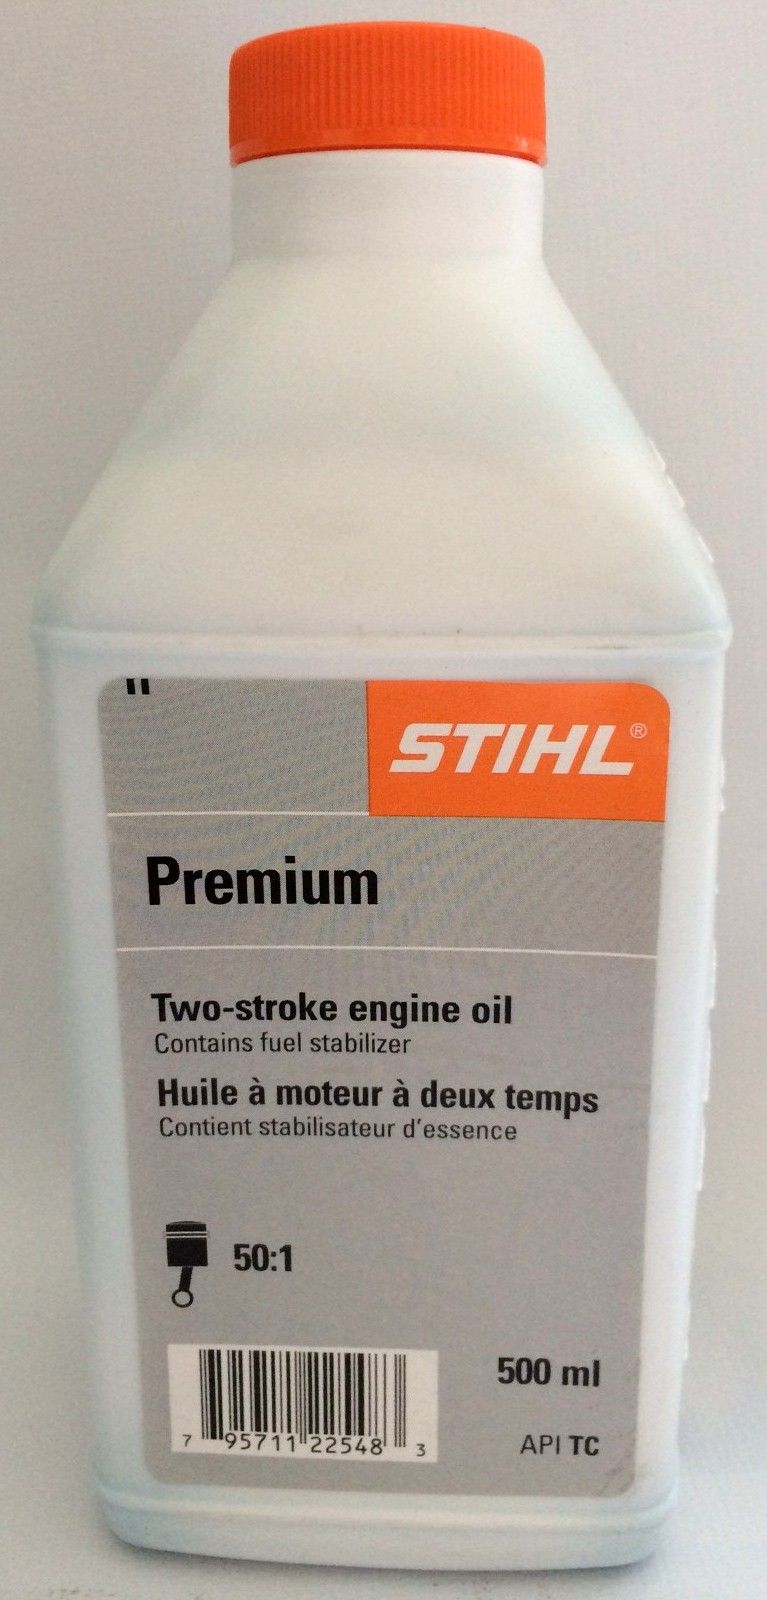 STIHL 500mL bottle of Premium 2-stroke engine oil